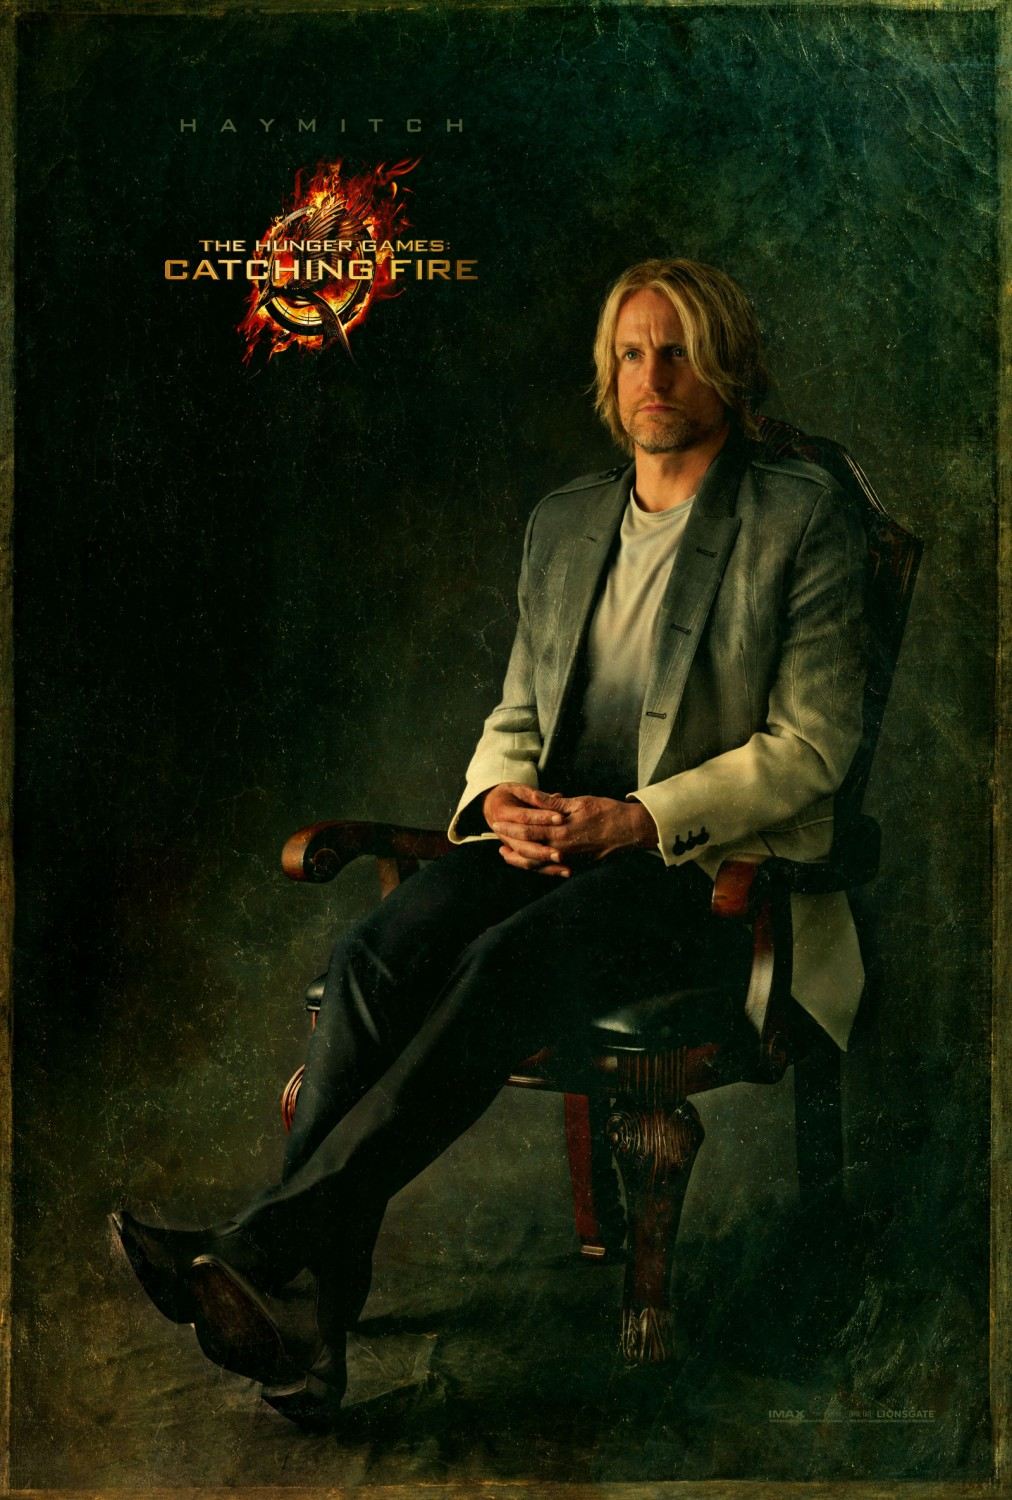 The Hunger Games Catching Fire - Poster - 006 - Haymitch Abernathy